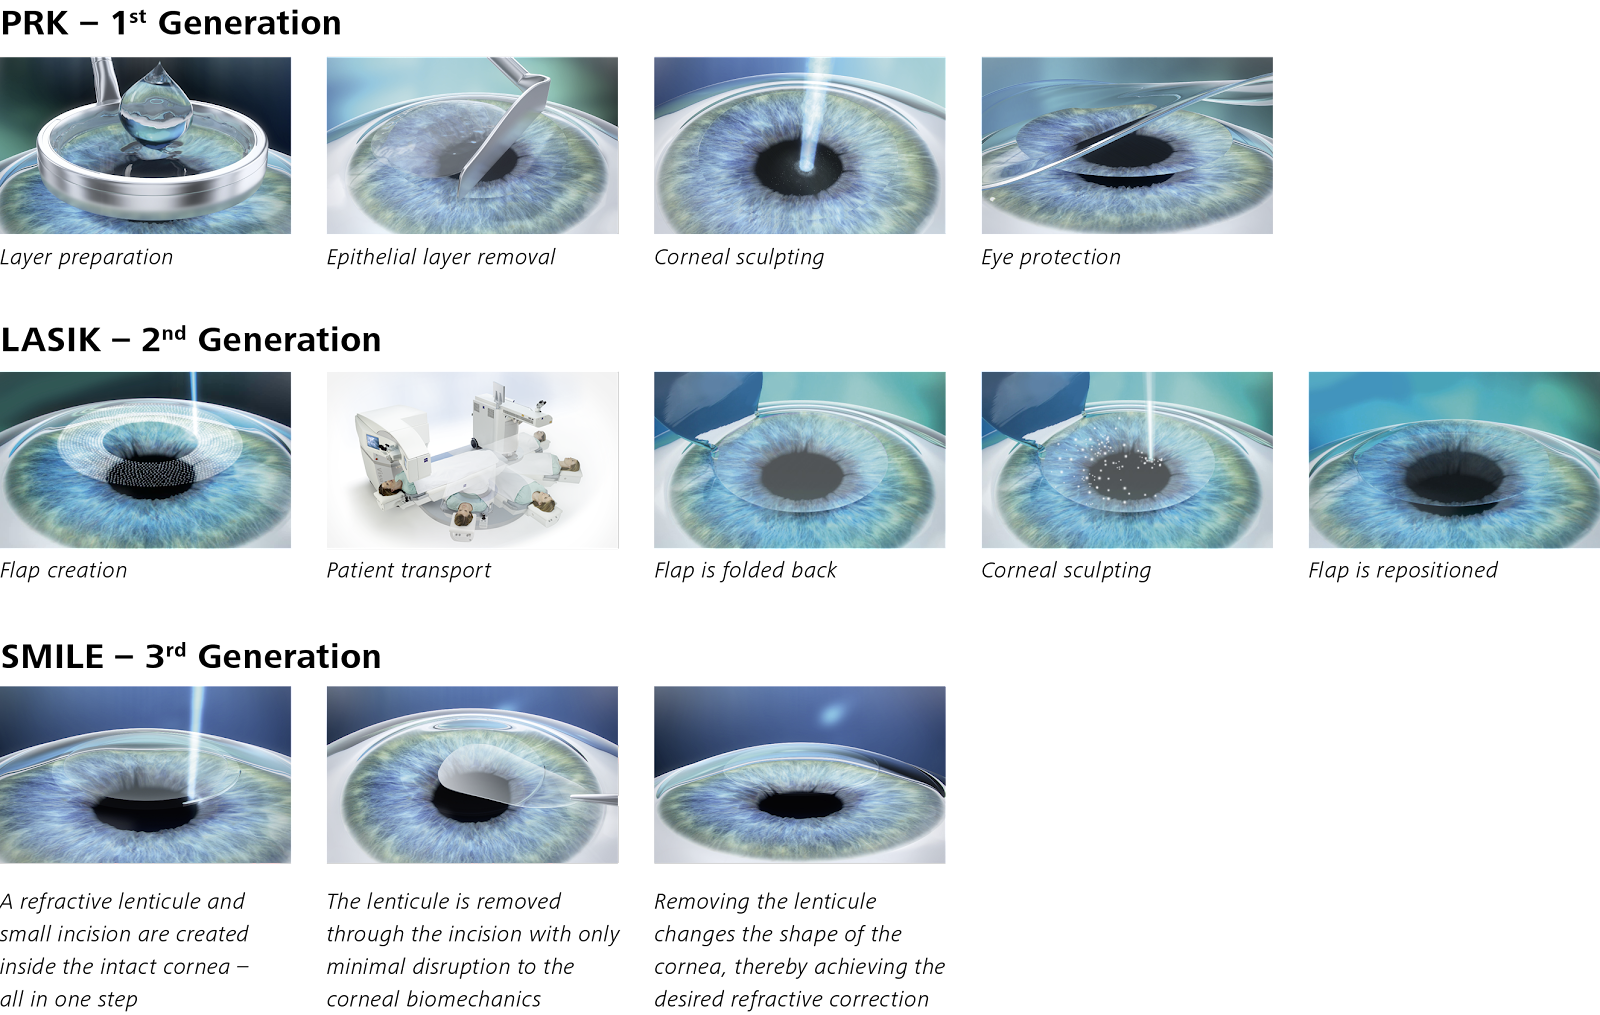 Laser Eye Surgery - compare steps for PRK, LASIK and SMILE laser eye surgery